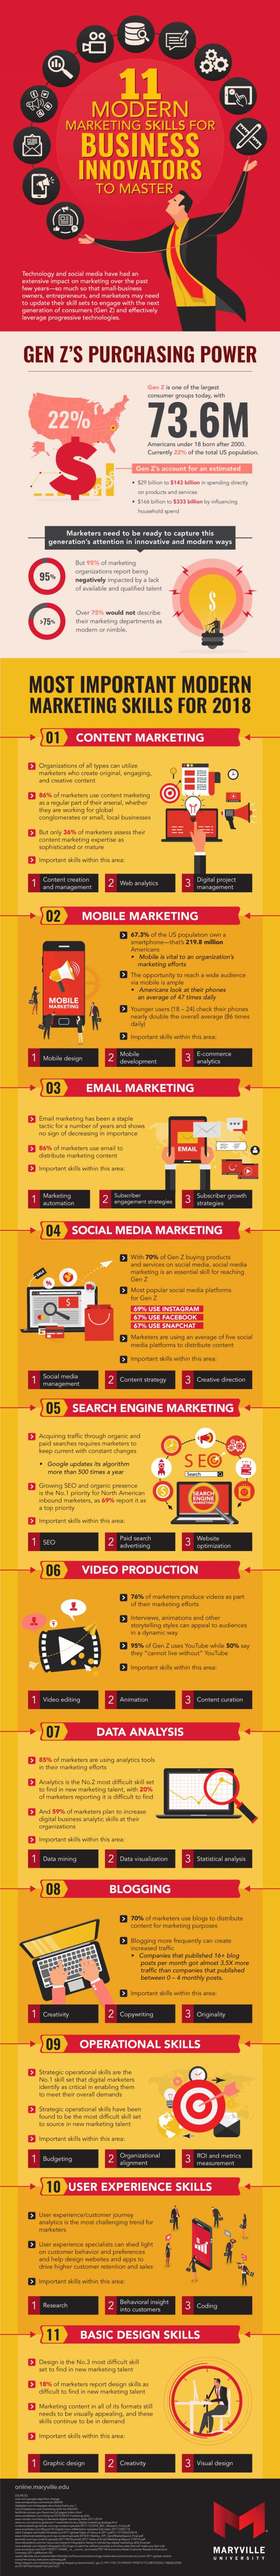 Infographic: Essential Marketing Skills